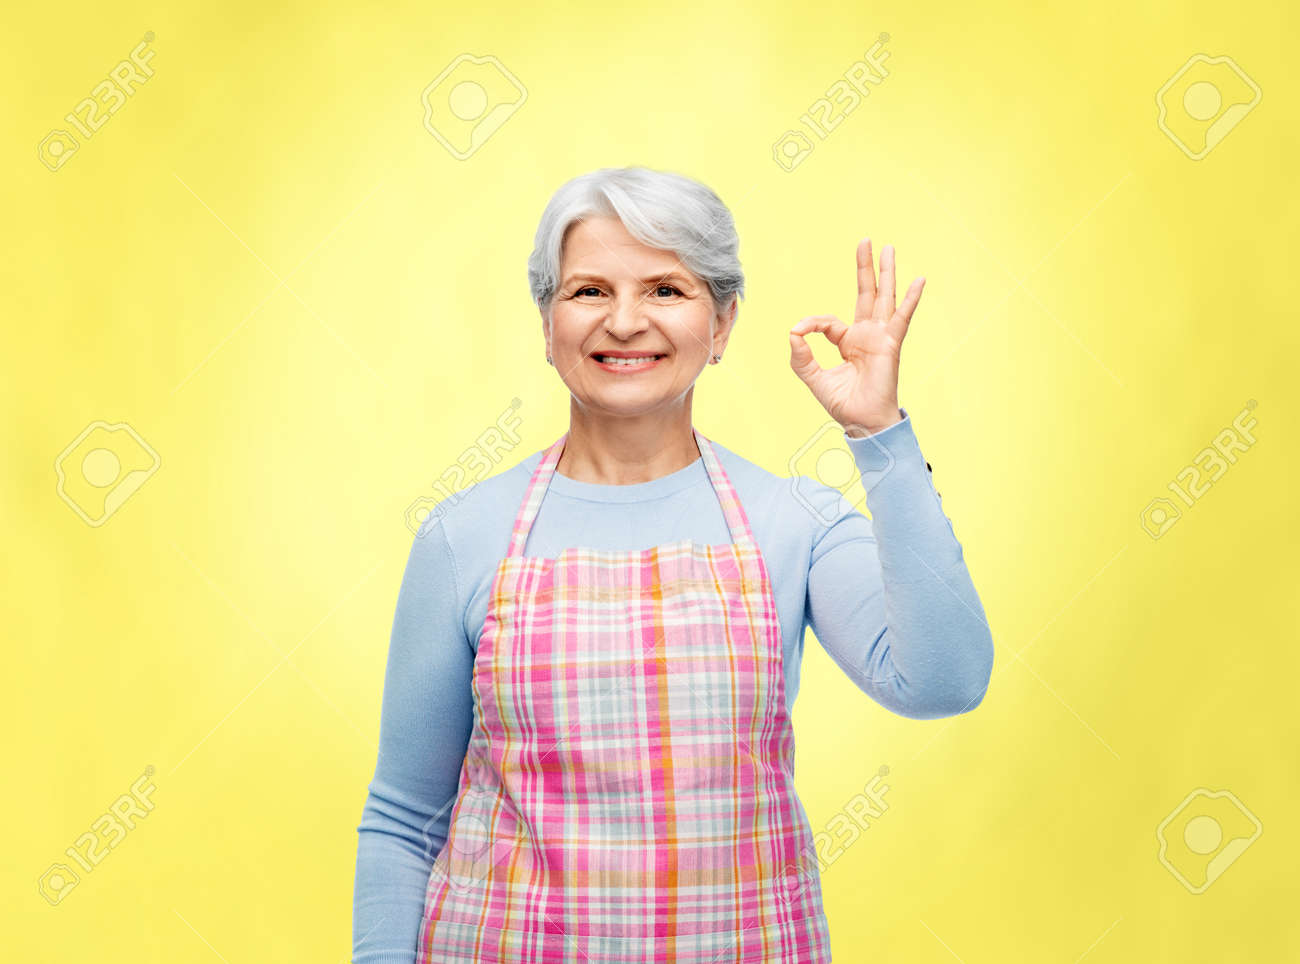 smiling senior woman in apron showing ok gesture - 169910291